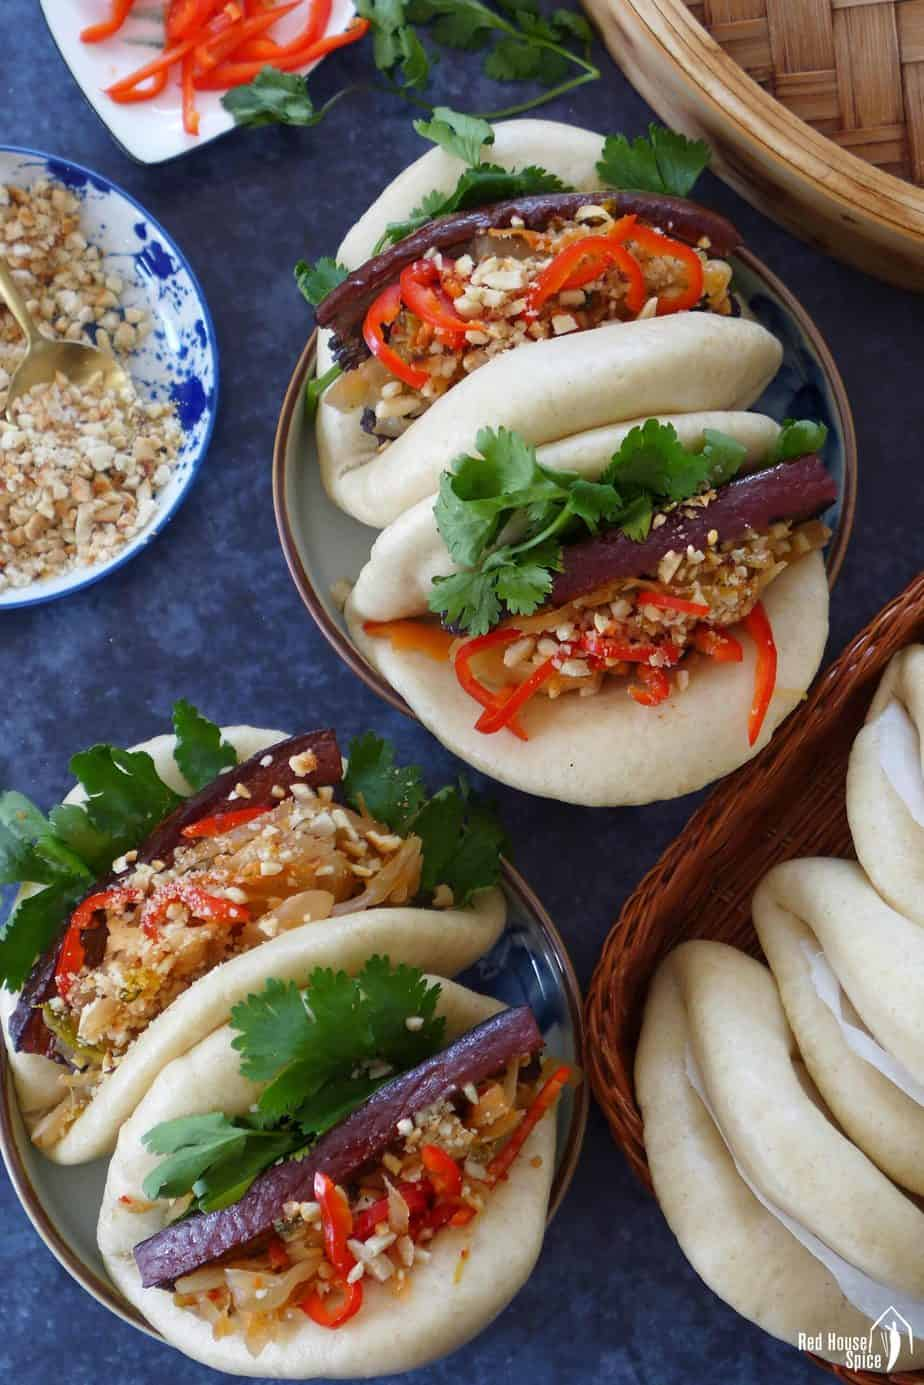 Assembled Gua Bao stuffed with pork belly slices.